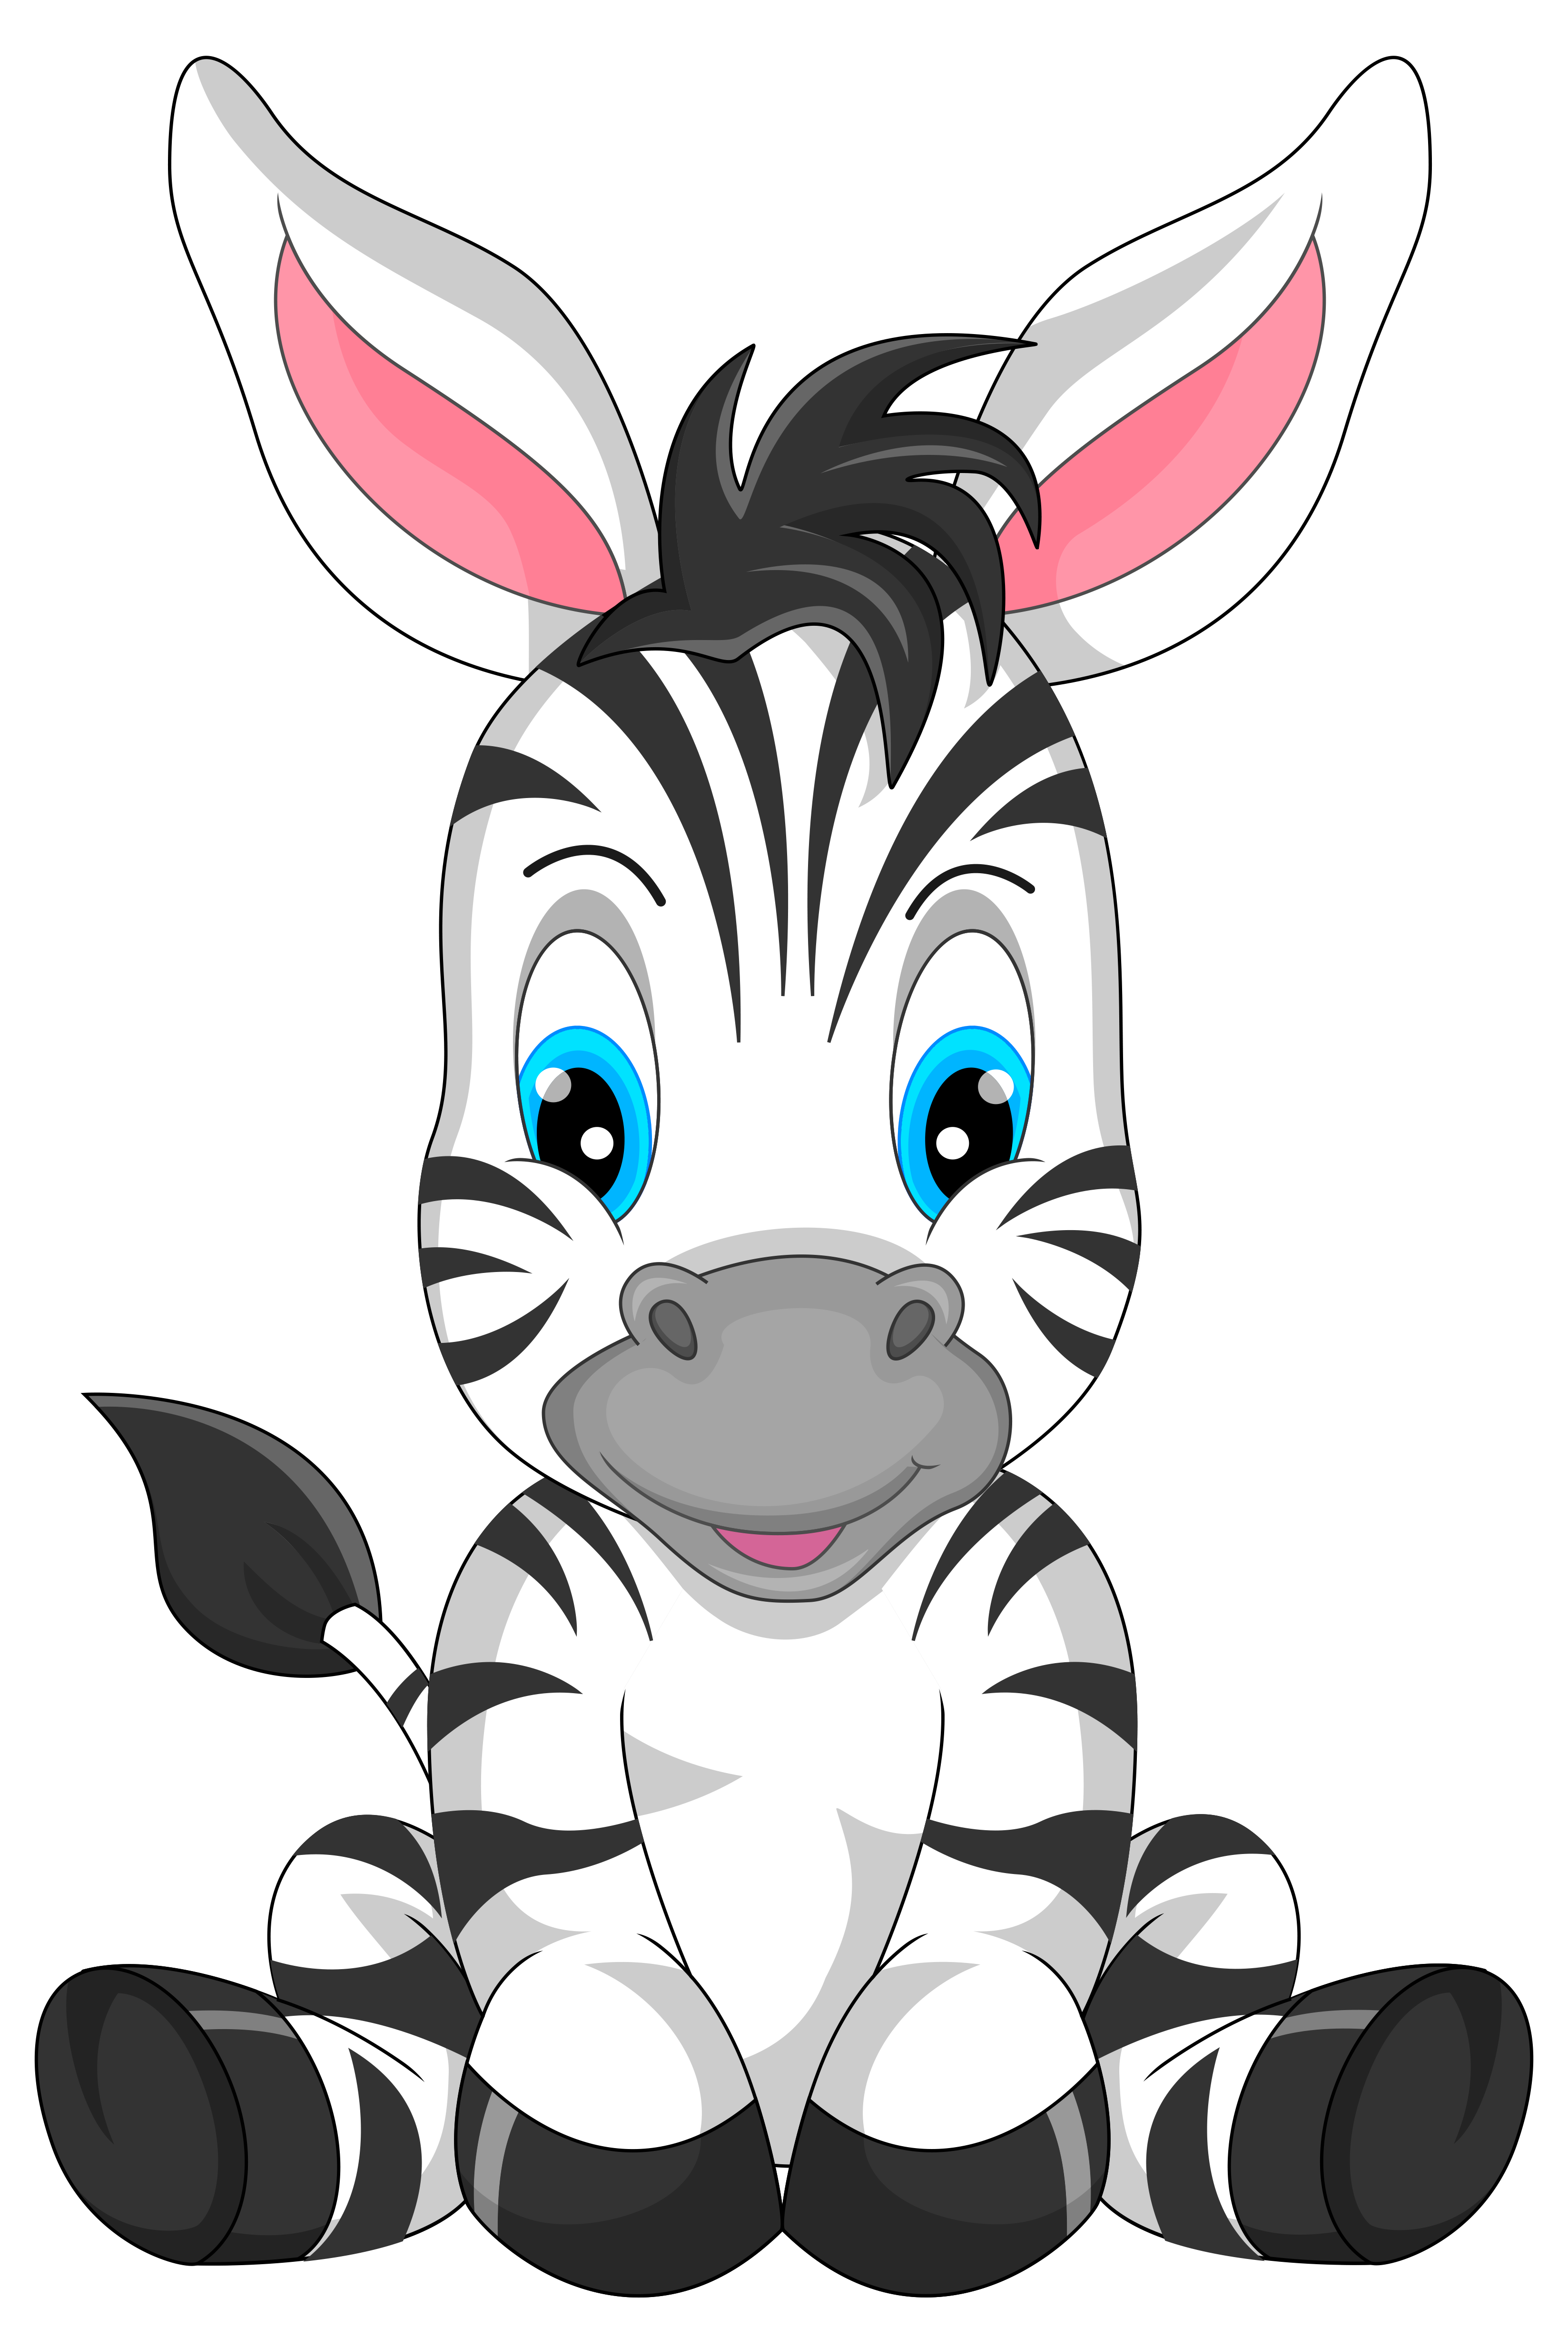 Zebra at school clipart vector freeuse library Cute Zebra Cartoon PNG Clipart Image | Gallery Yopriceville ... vector freeuse library